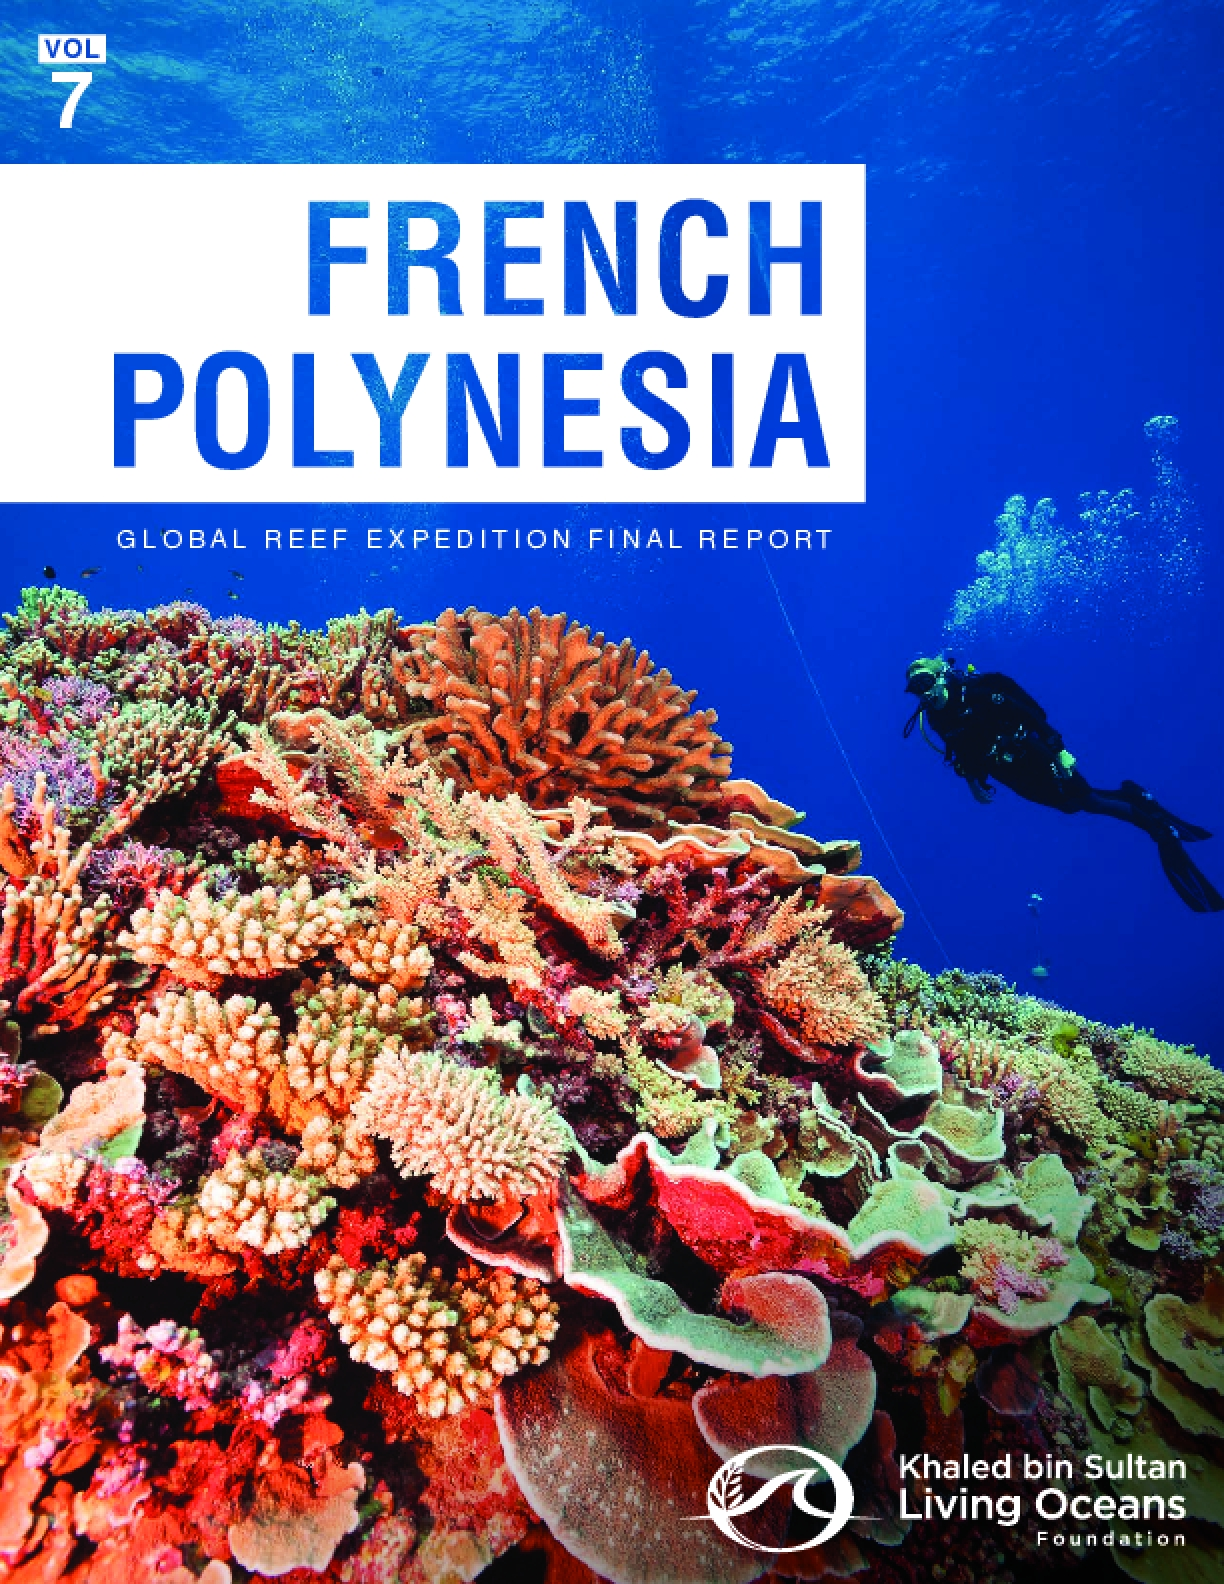 Global Reef Expedition: French Polynesia Final Report